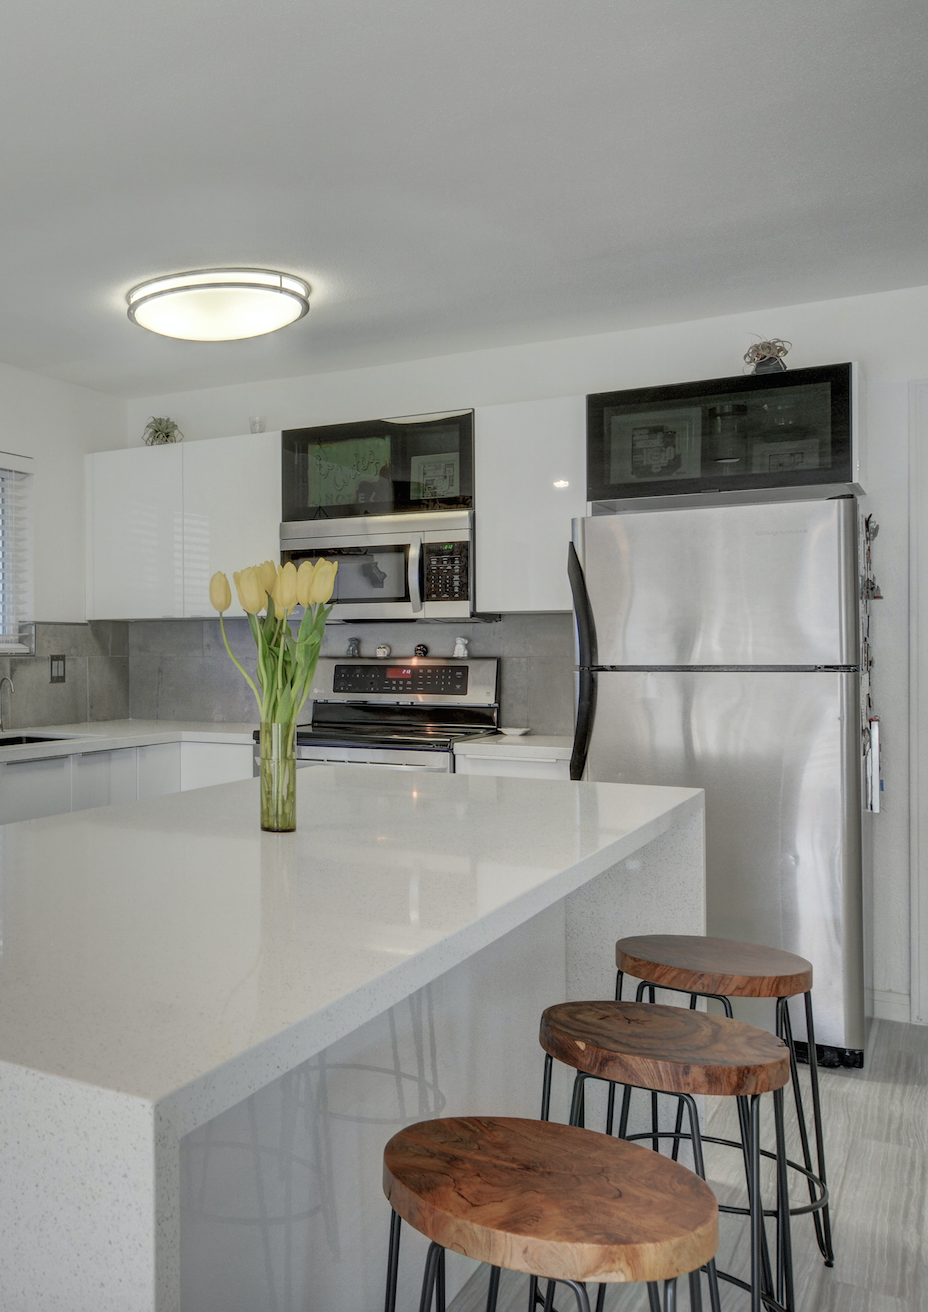 Simple Yet Stunning #kitchendesign By Las Vegas Remodel U0026 Construction. We  Love The Classic White With Natural Wood Touches #ikea #dellaterra ...